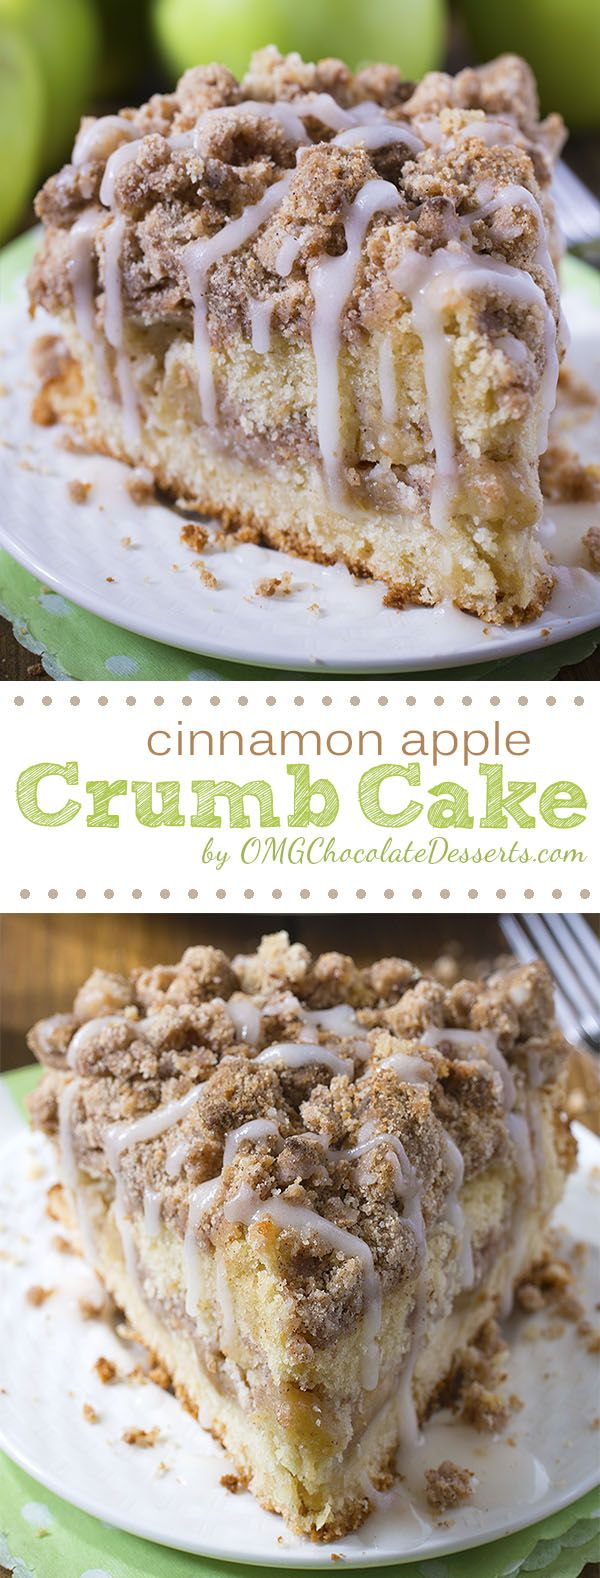 style online shopping Are you ready for fall baking  Cinnamon Apple Crumb Cake is the perfect dessert for crisp weather coming up